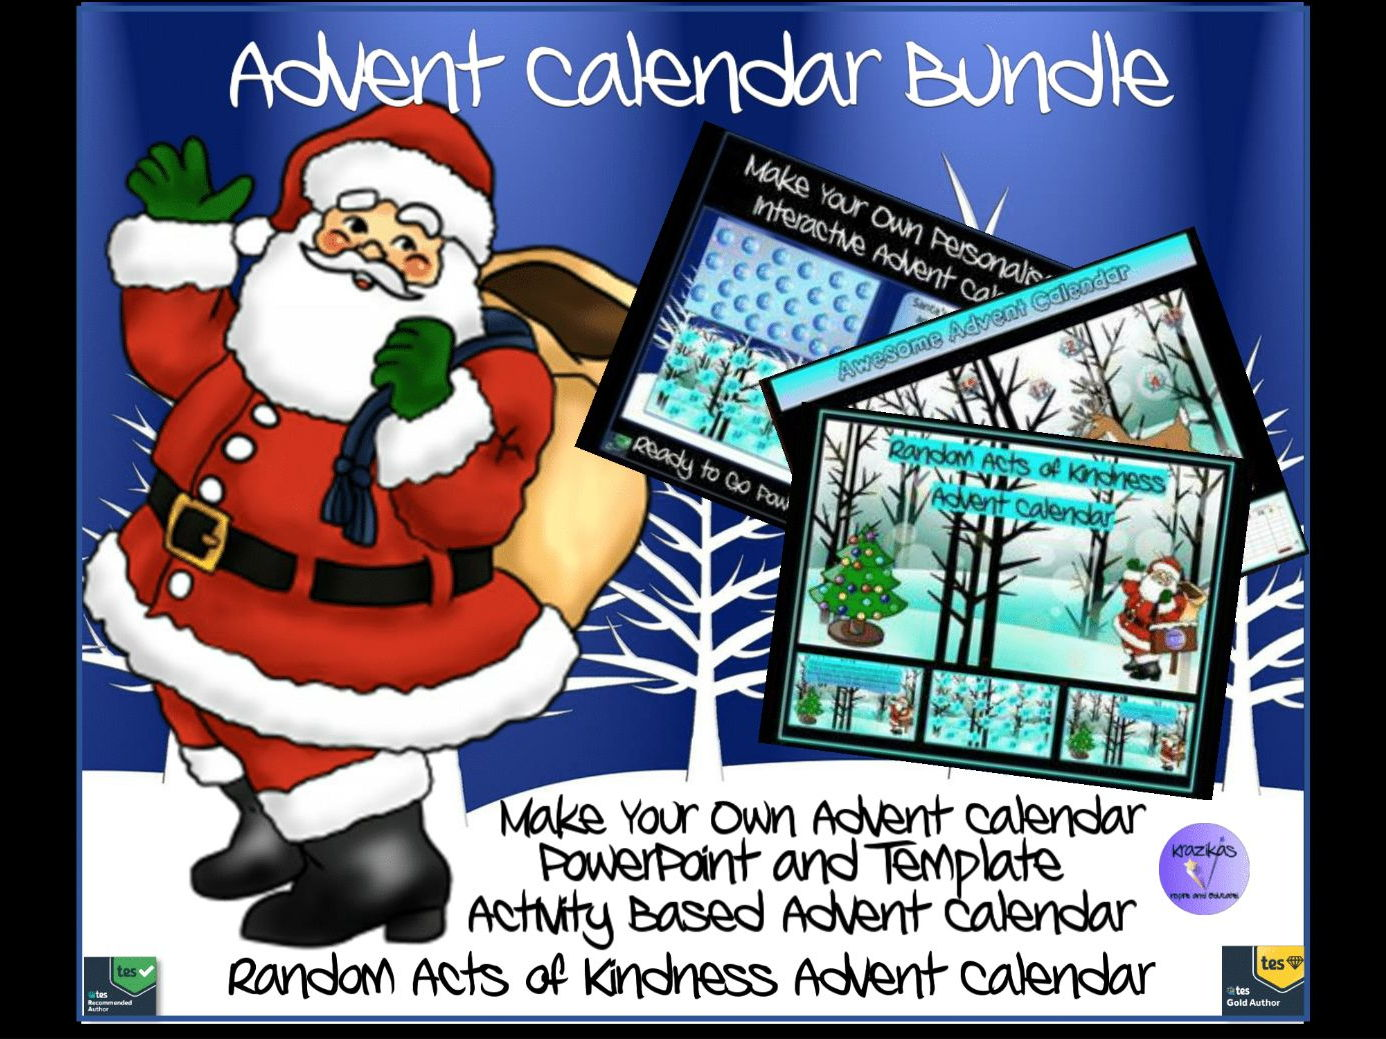 Awesome Advent Calendar Bundle - Random Acts of Kindness, Activity Based Calendar and Make Your Own Calendar Interactive PowerPoint and Template